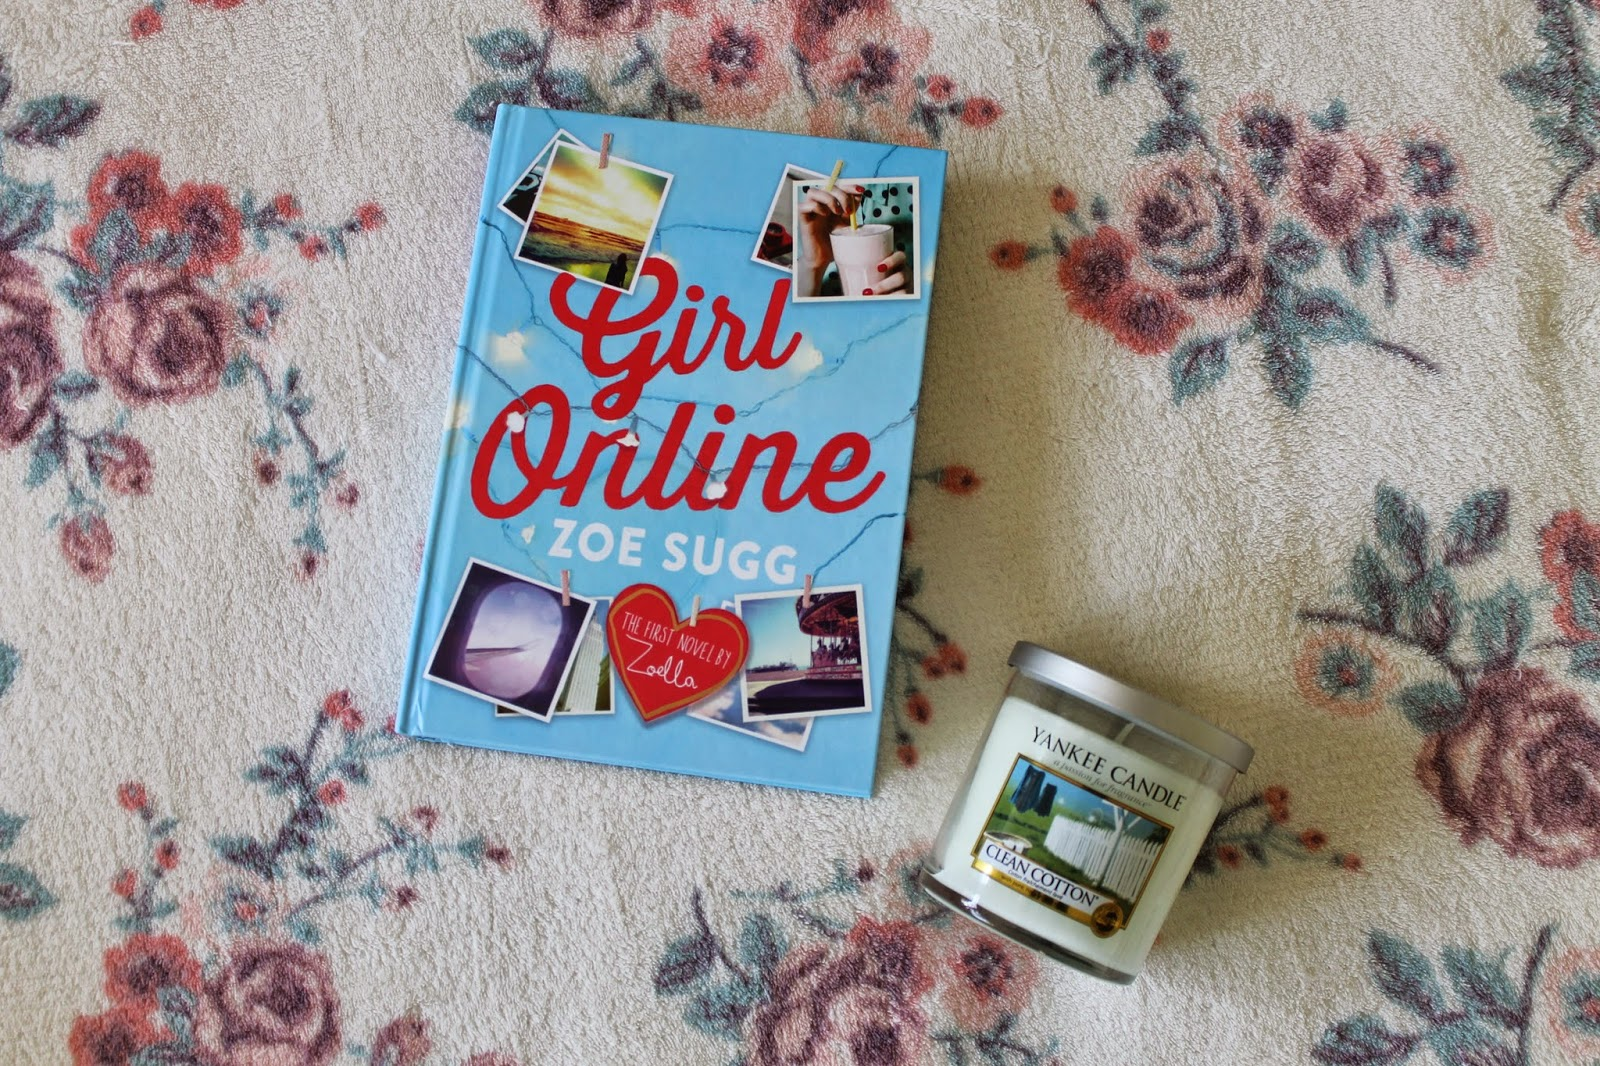 Girl Online Book by Zoe Sugg and Yankee Candle in Clean Cotton Christmas Presents 2014